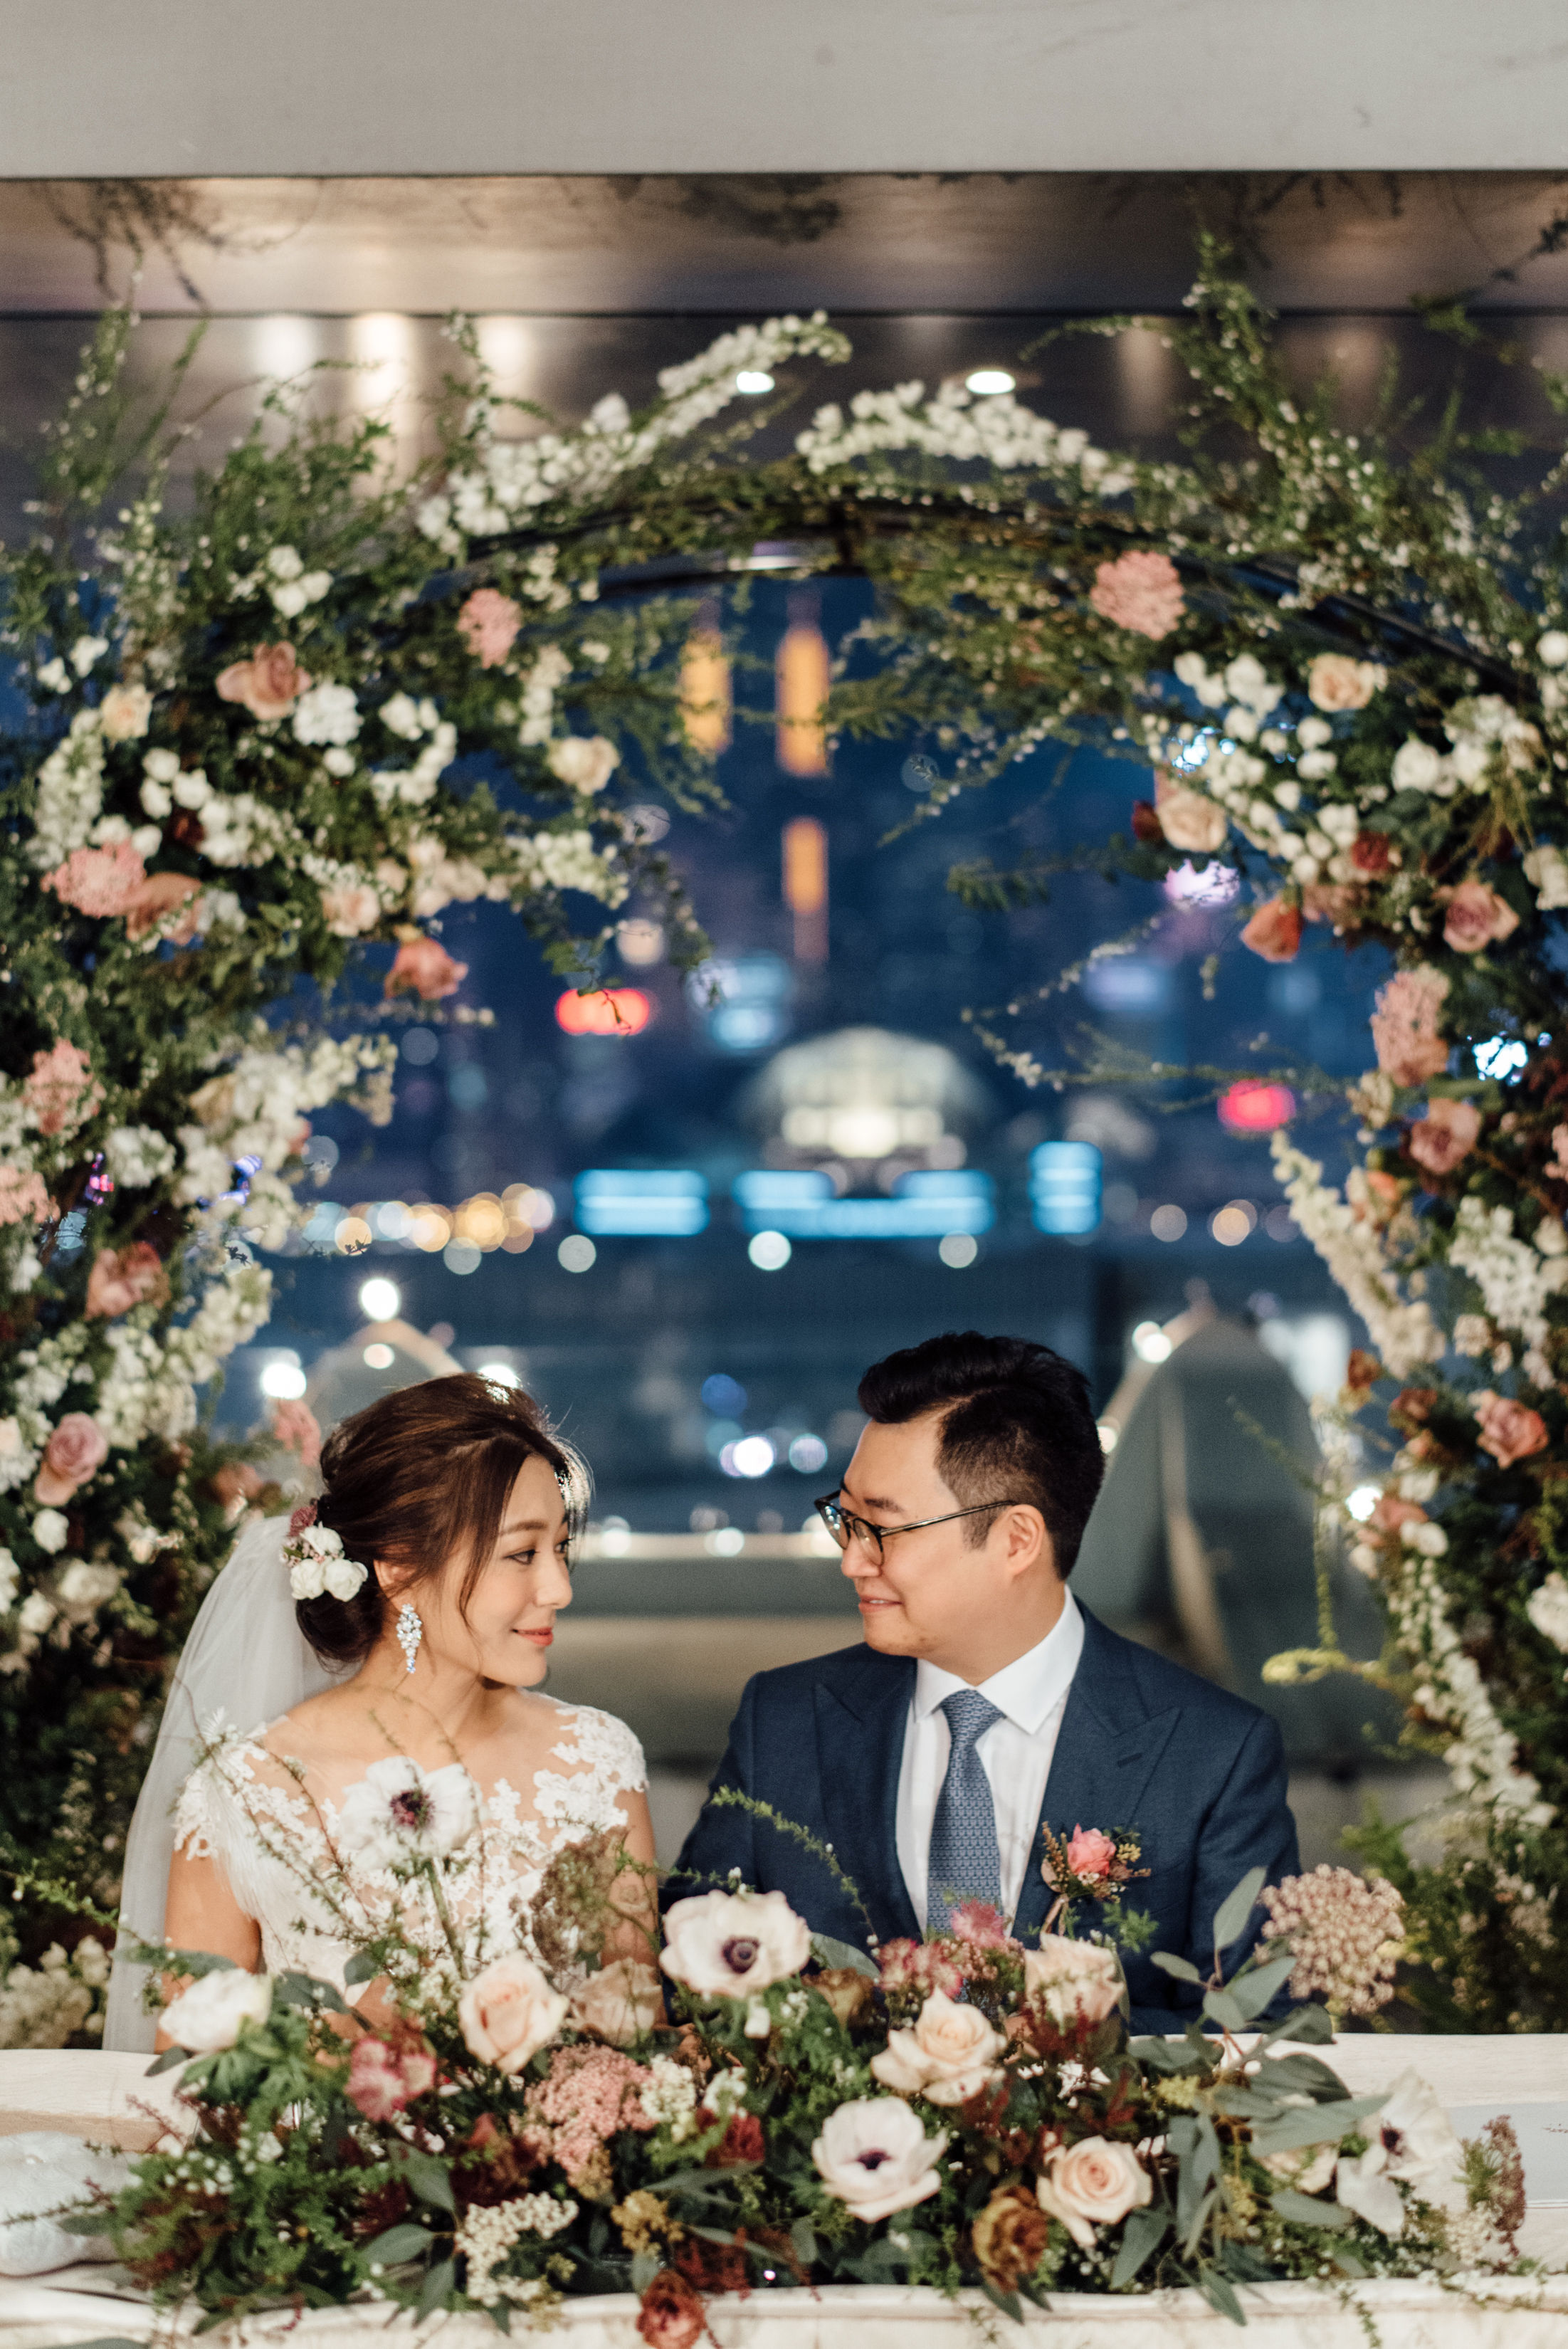 ELAINE & STEPHEN  GARDEN SUITE, PENINSULA HOTEL HONG KONG  Photography by Lauhaus